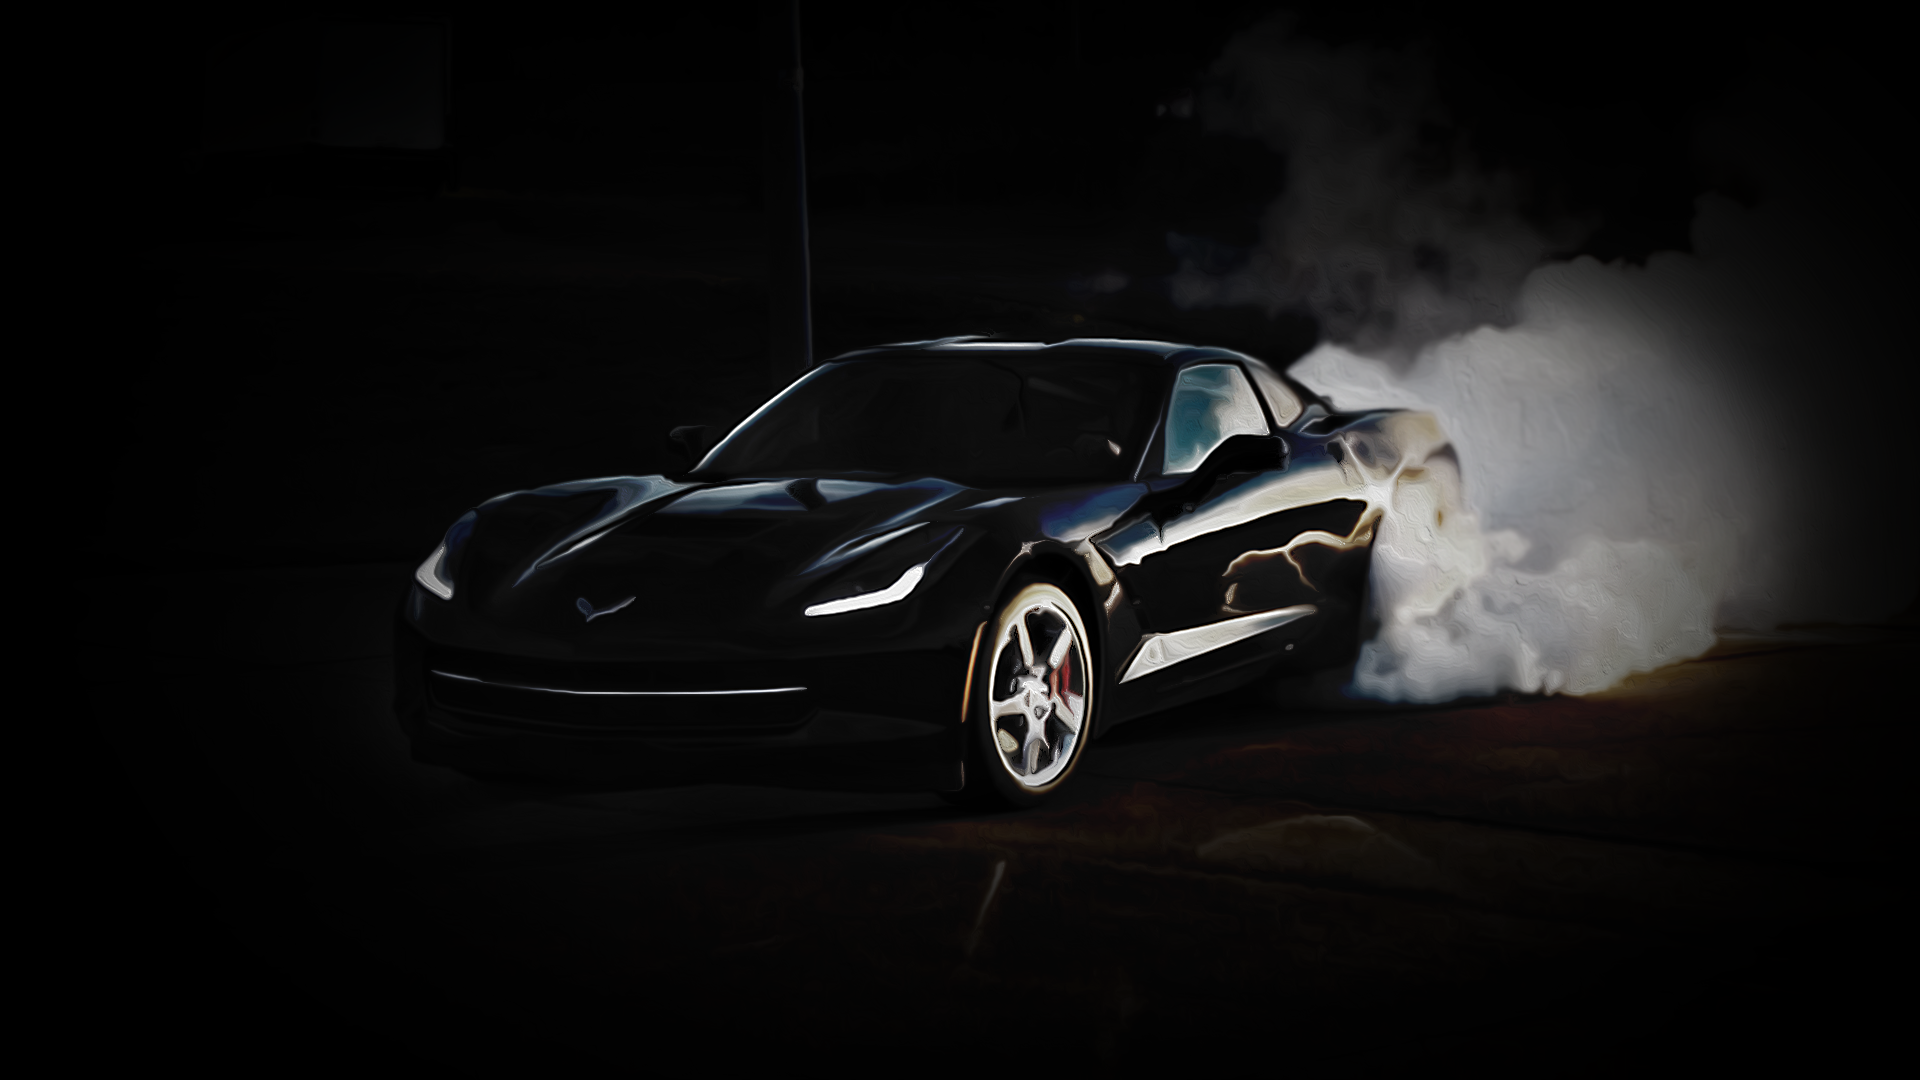 Corvette C7 Wallpaper by MaritimeCanuck on DeviantArt | 1920 x 1080 png 804kB